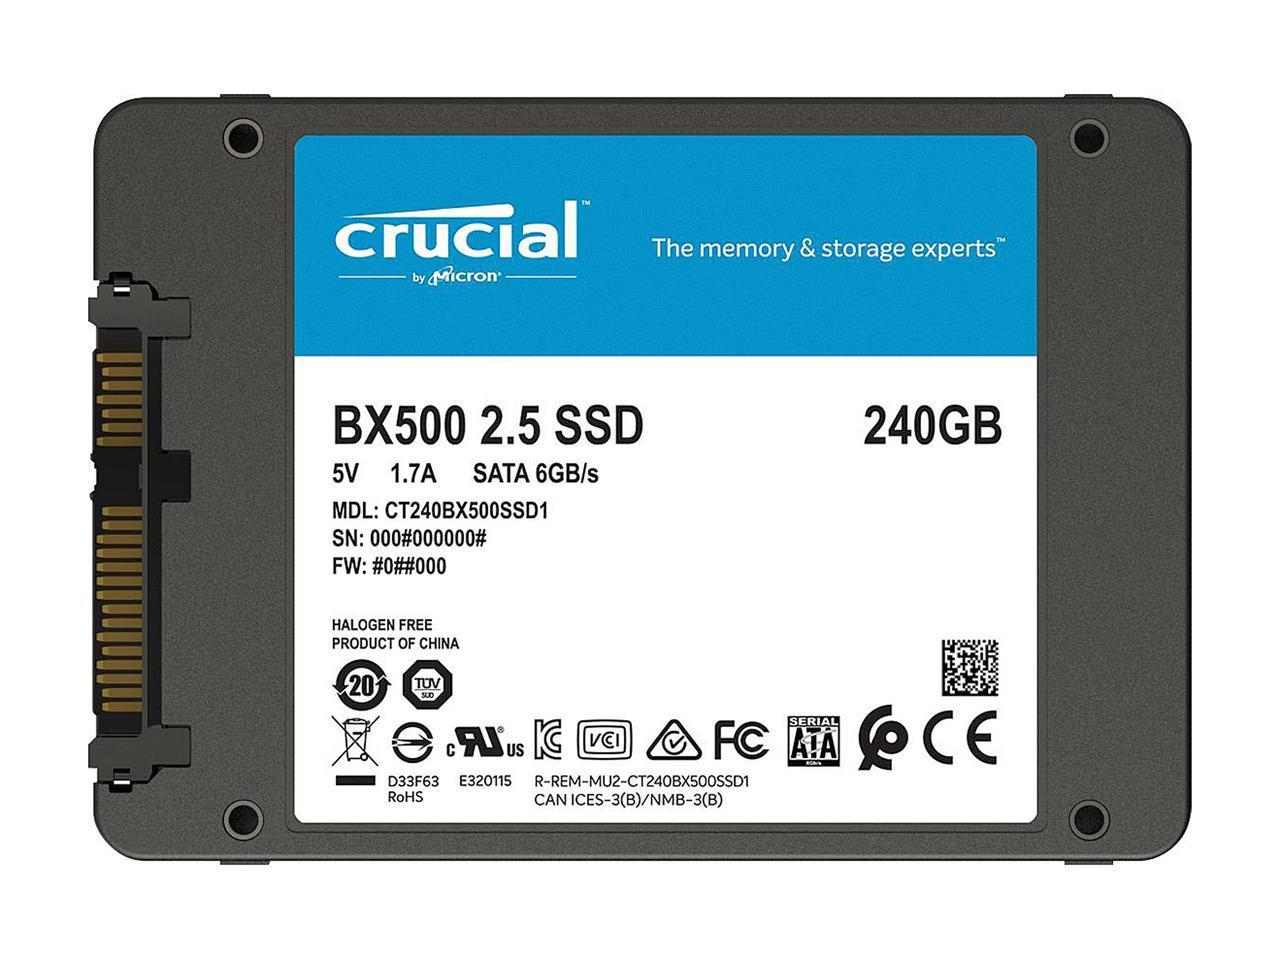 Details about Crucial BX500 240GB 3D NAND SATA 2 5-Inch Internal SSD -  CT240BX500SSD1Z